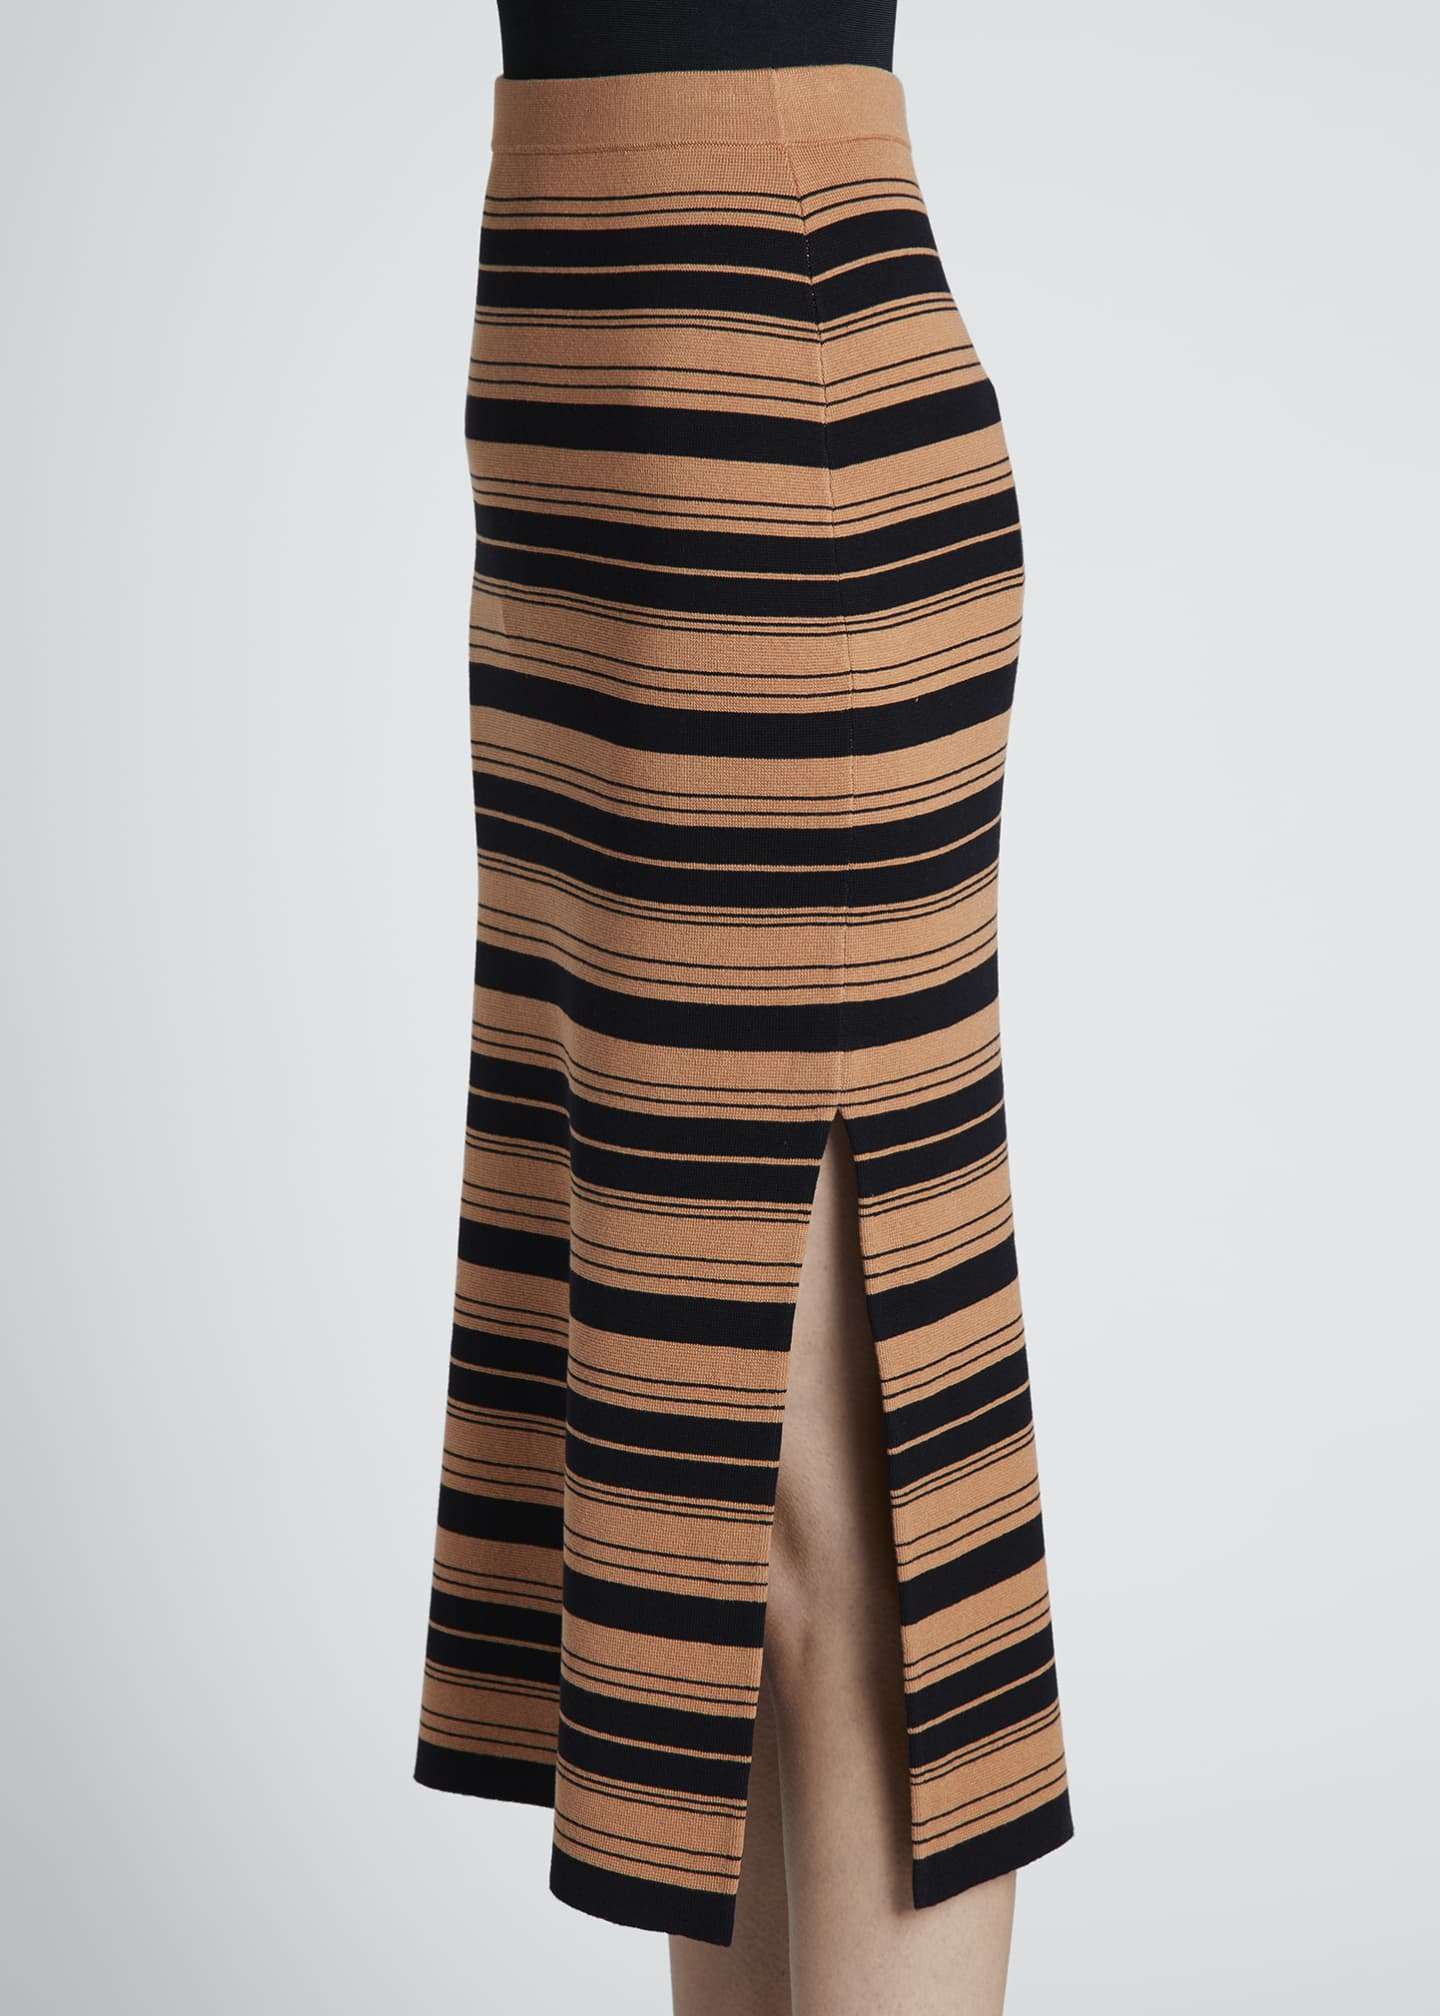 Image 3 of 3: Compact Striped Midi Skirt